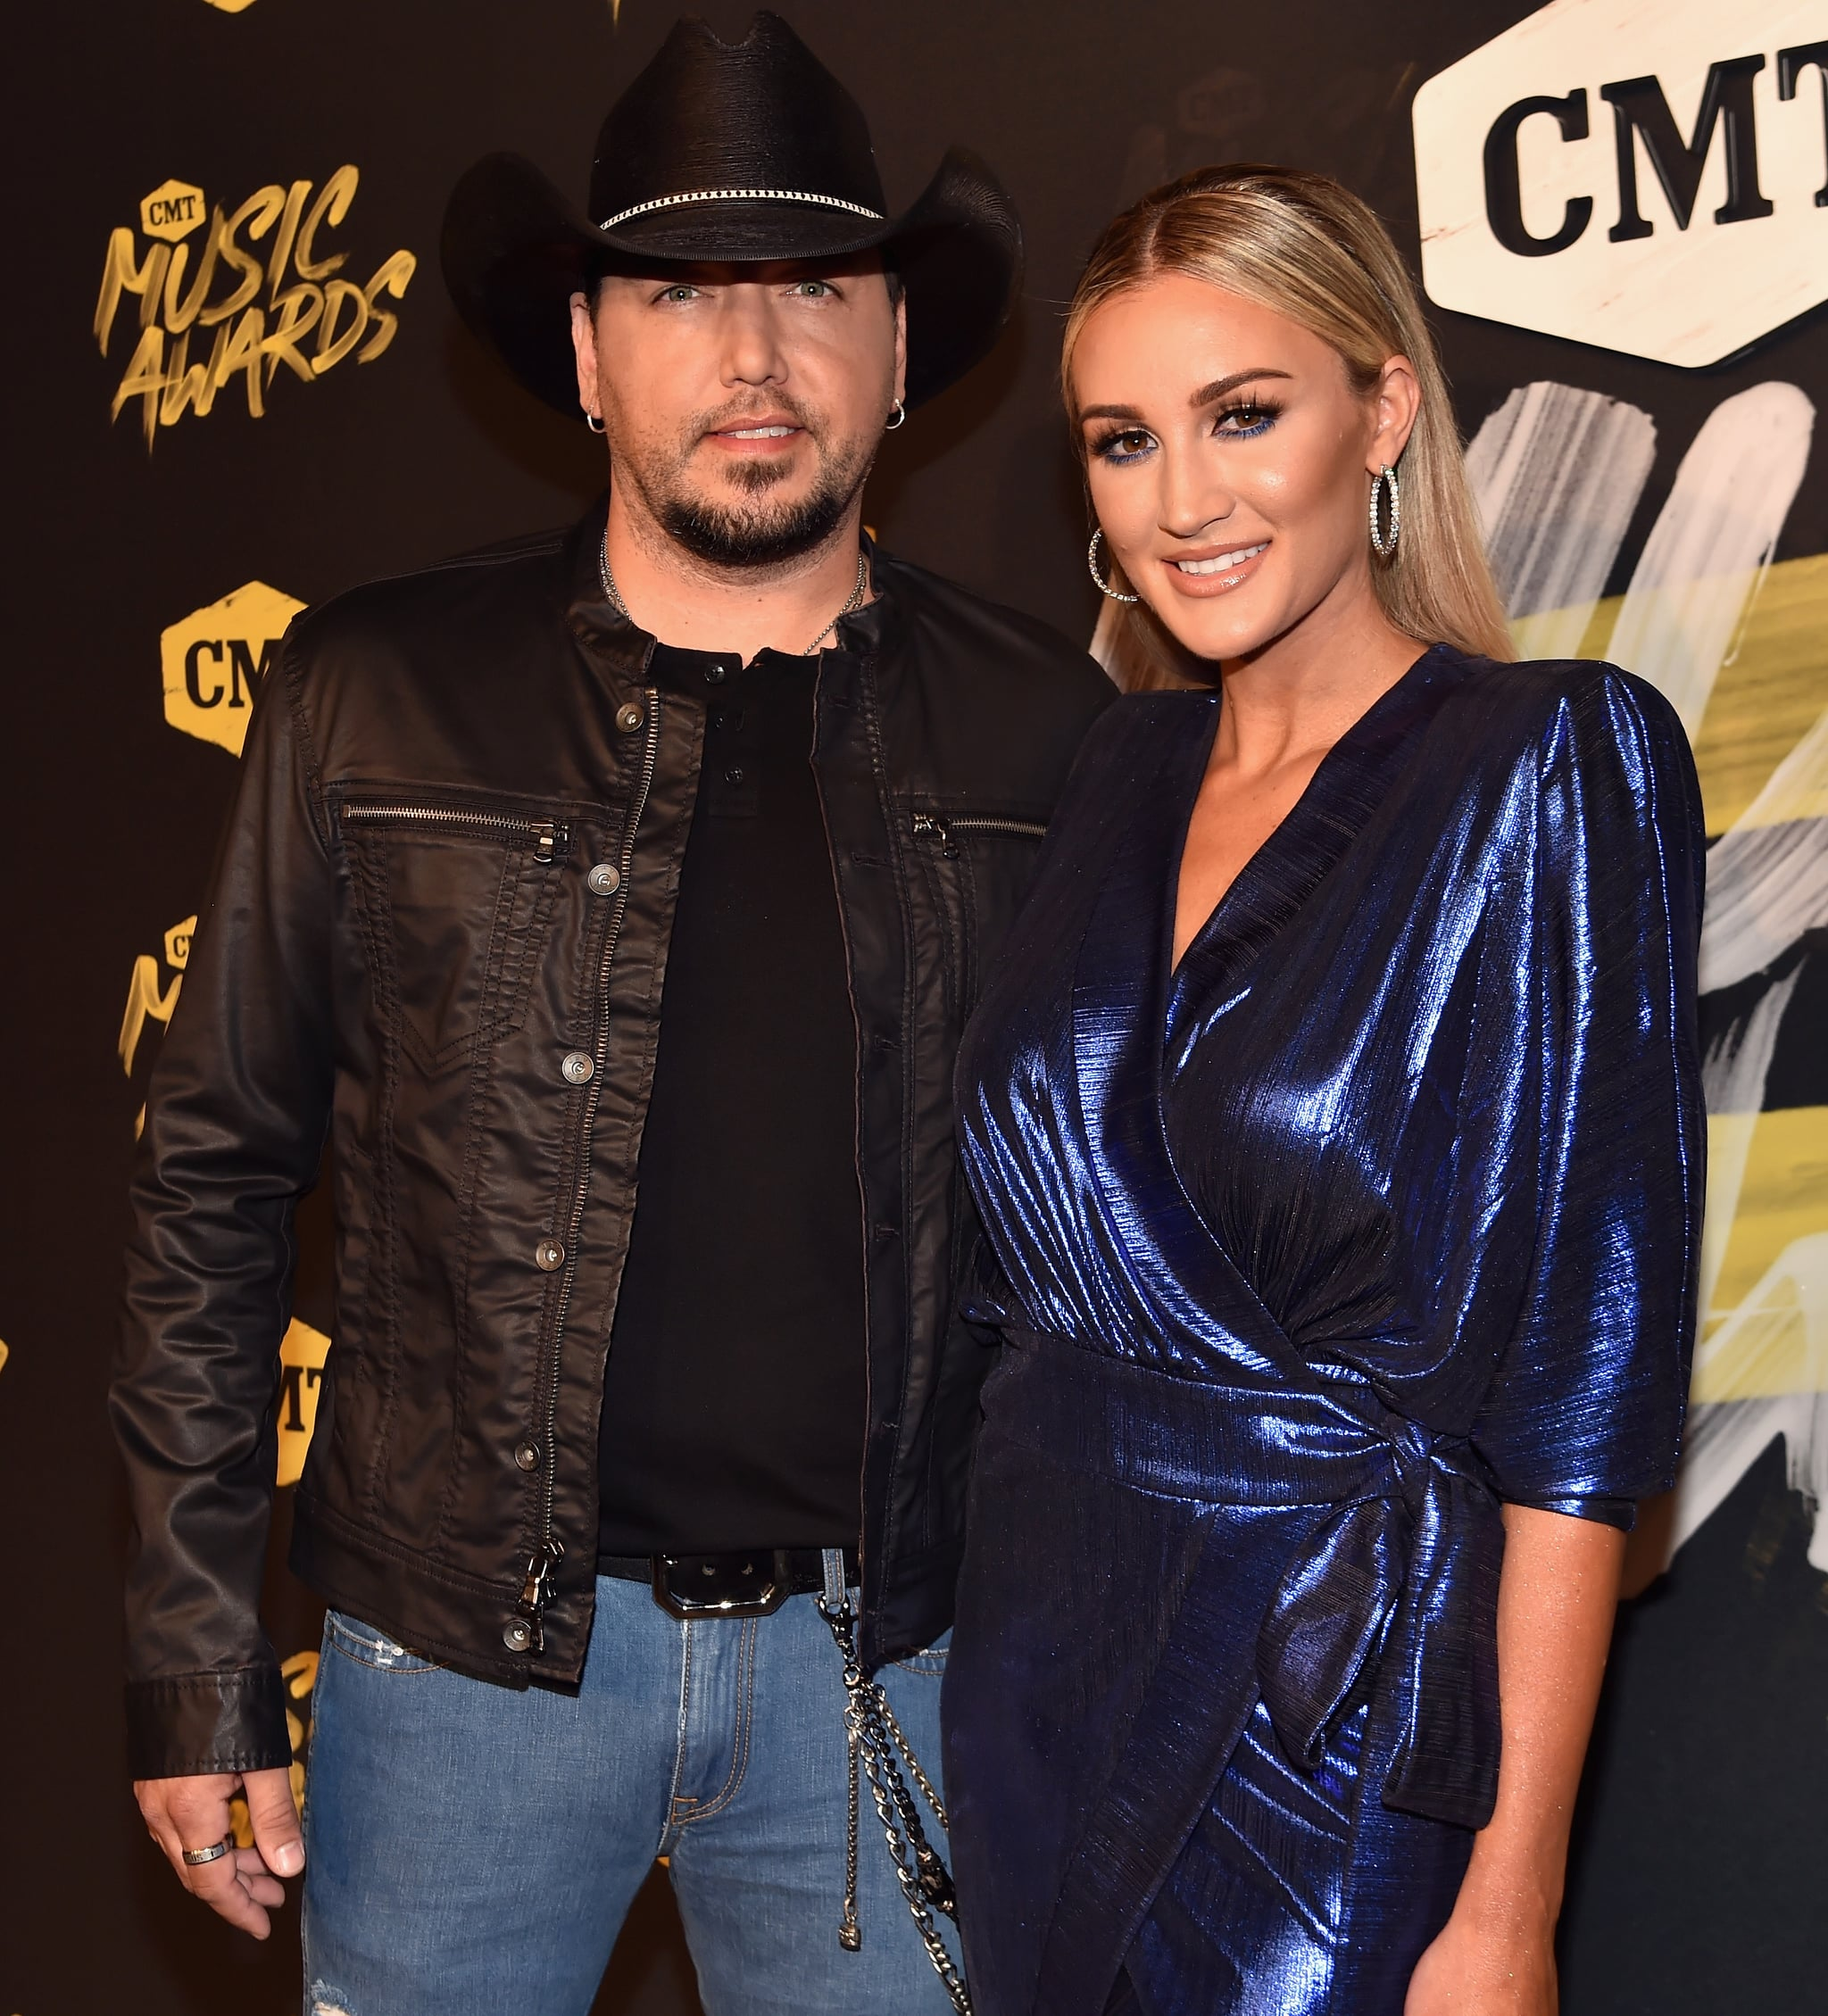 NASHVILLE, TN - JUNE 06:  Jason Aldean and Brittany Kerr attend the 2018 CMT Music Awards at Nashville Municipal Auditorium on June 6, 2018 in Nashville, Tennessee.  (Photo by Jeff Kravitz/FilmMagic)